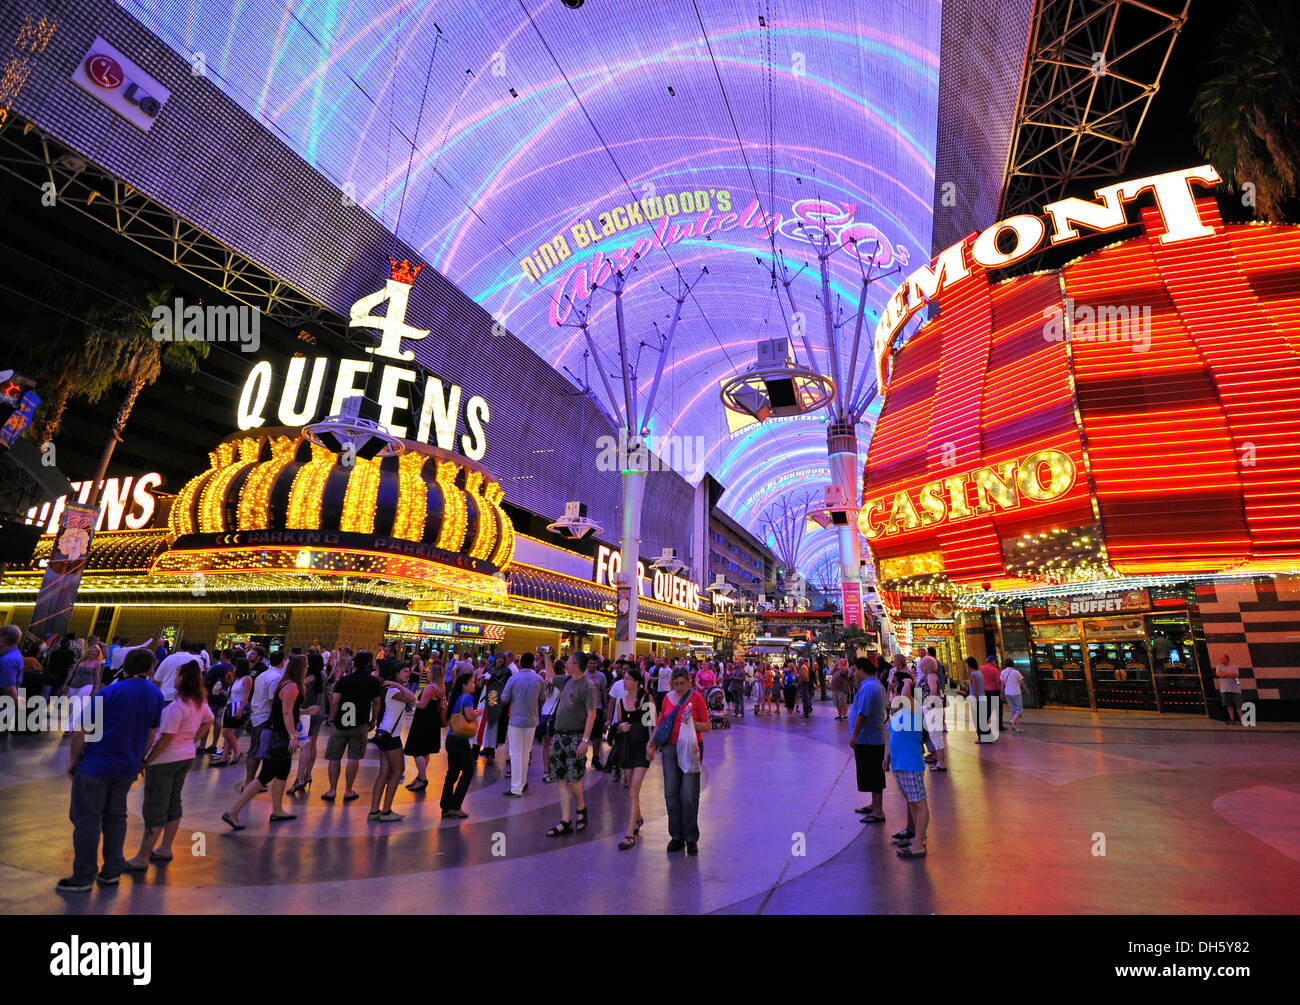 map of las vegas strip hotels and shopping with Stock Photo Neon Dome Of The Fremont Street Experience In Old Las Vegas Casino 62211410 on High Resolution Maps in addition Pubcon Las Vegas 2015 furthermore Attraction Review G45963 D517543 Reviews Las Vegas North Premium Outlets Las Vegas Nevada additionally Las Vegas Photos together with Aria Las Vegas.